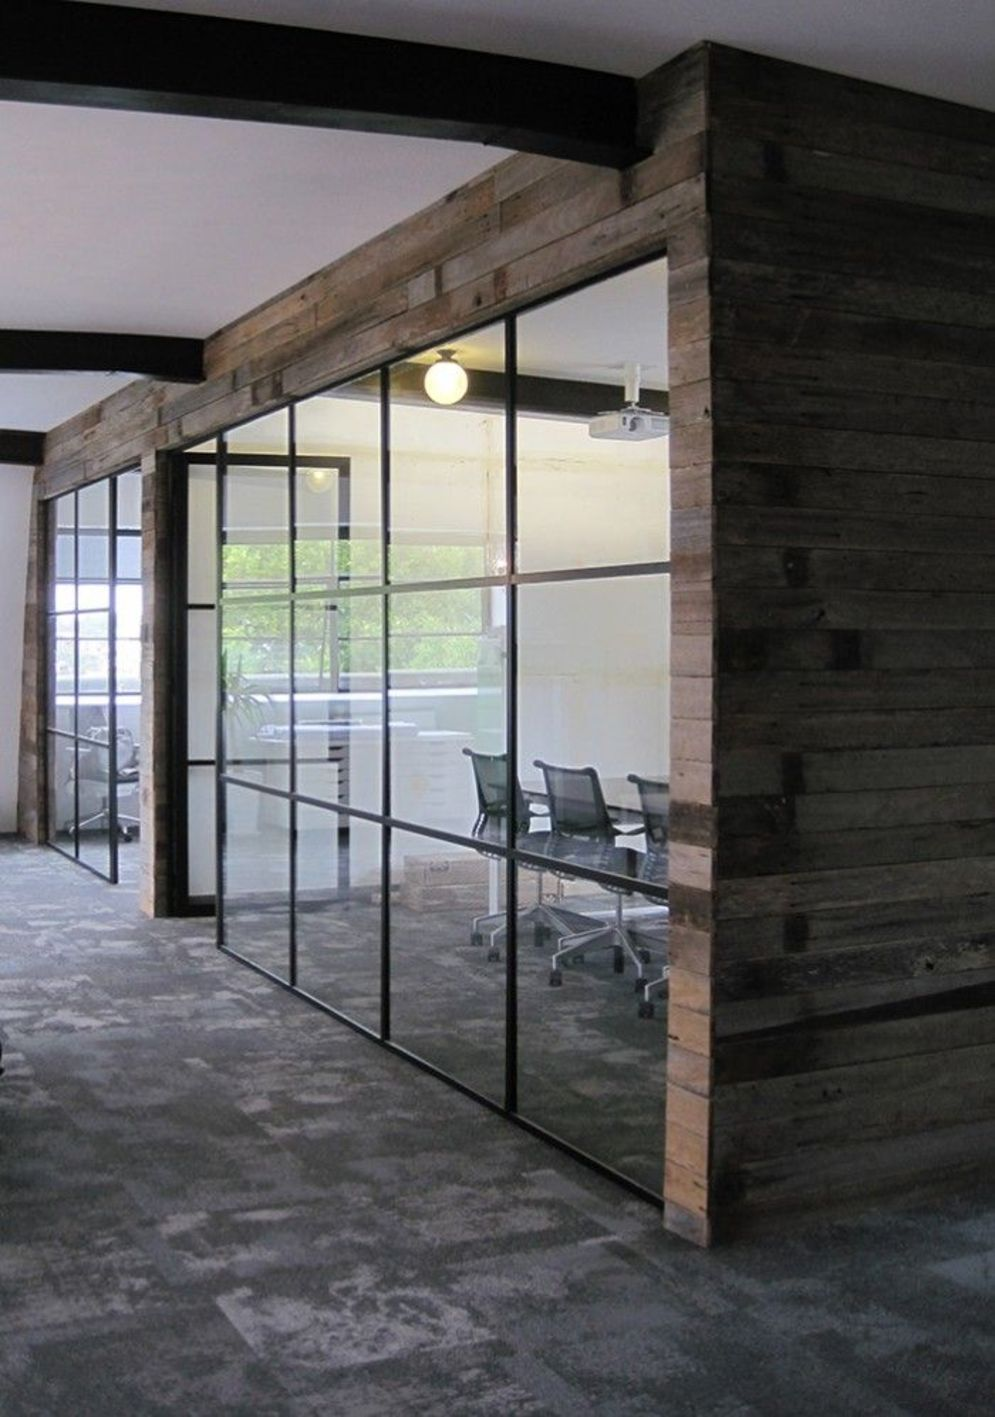 Bright home concepts with modern style of glass partition giving vast interior sense of space Image 3